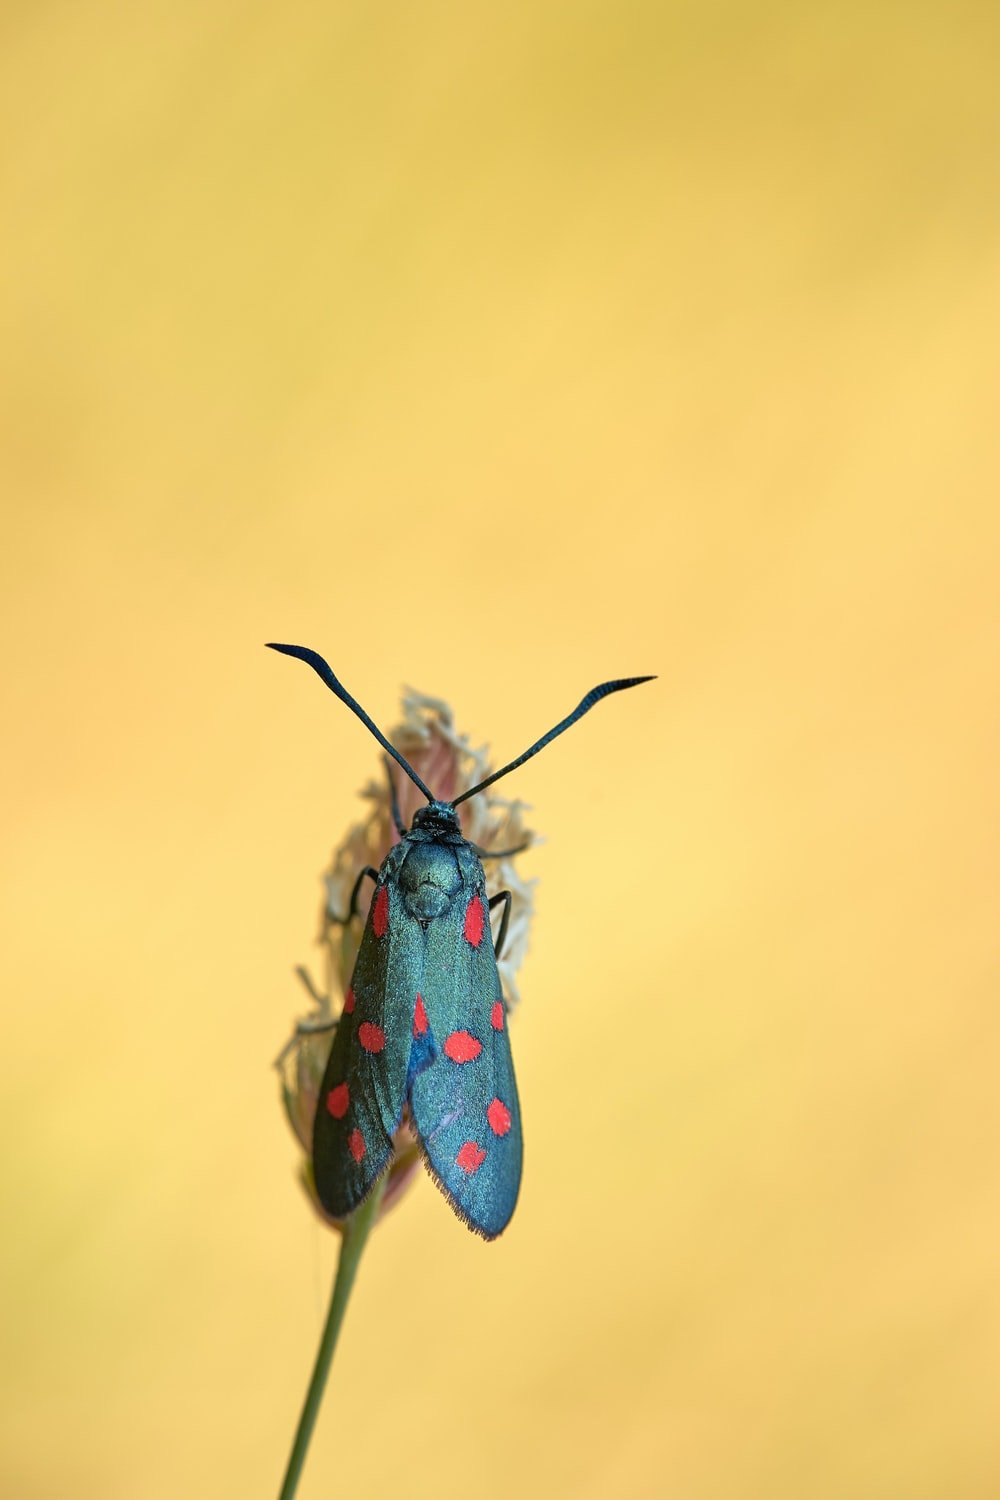 red and black insect in close up photography